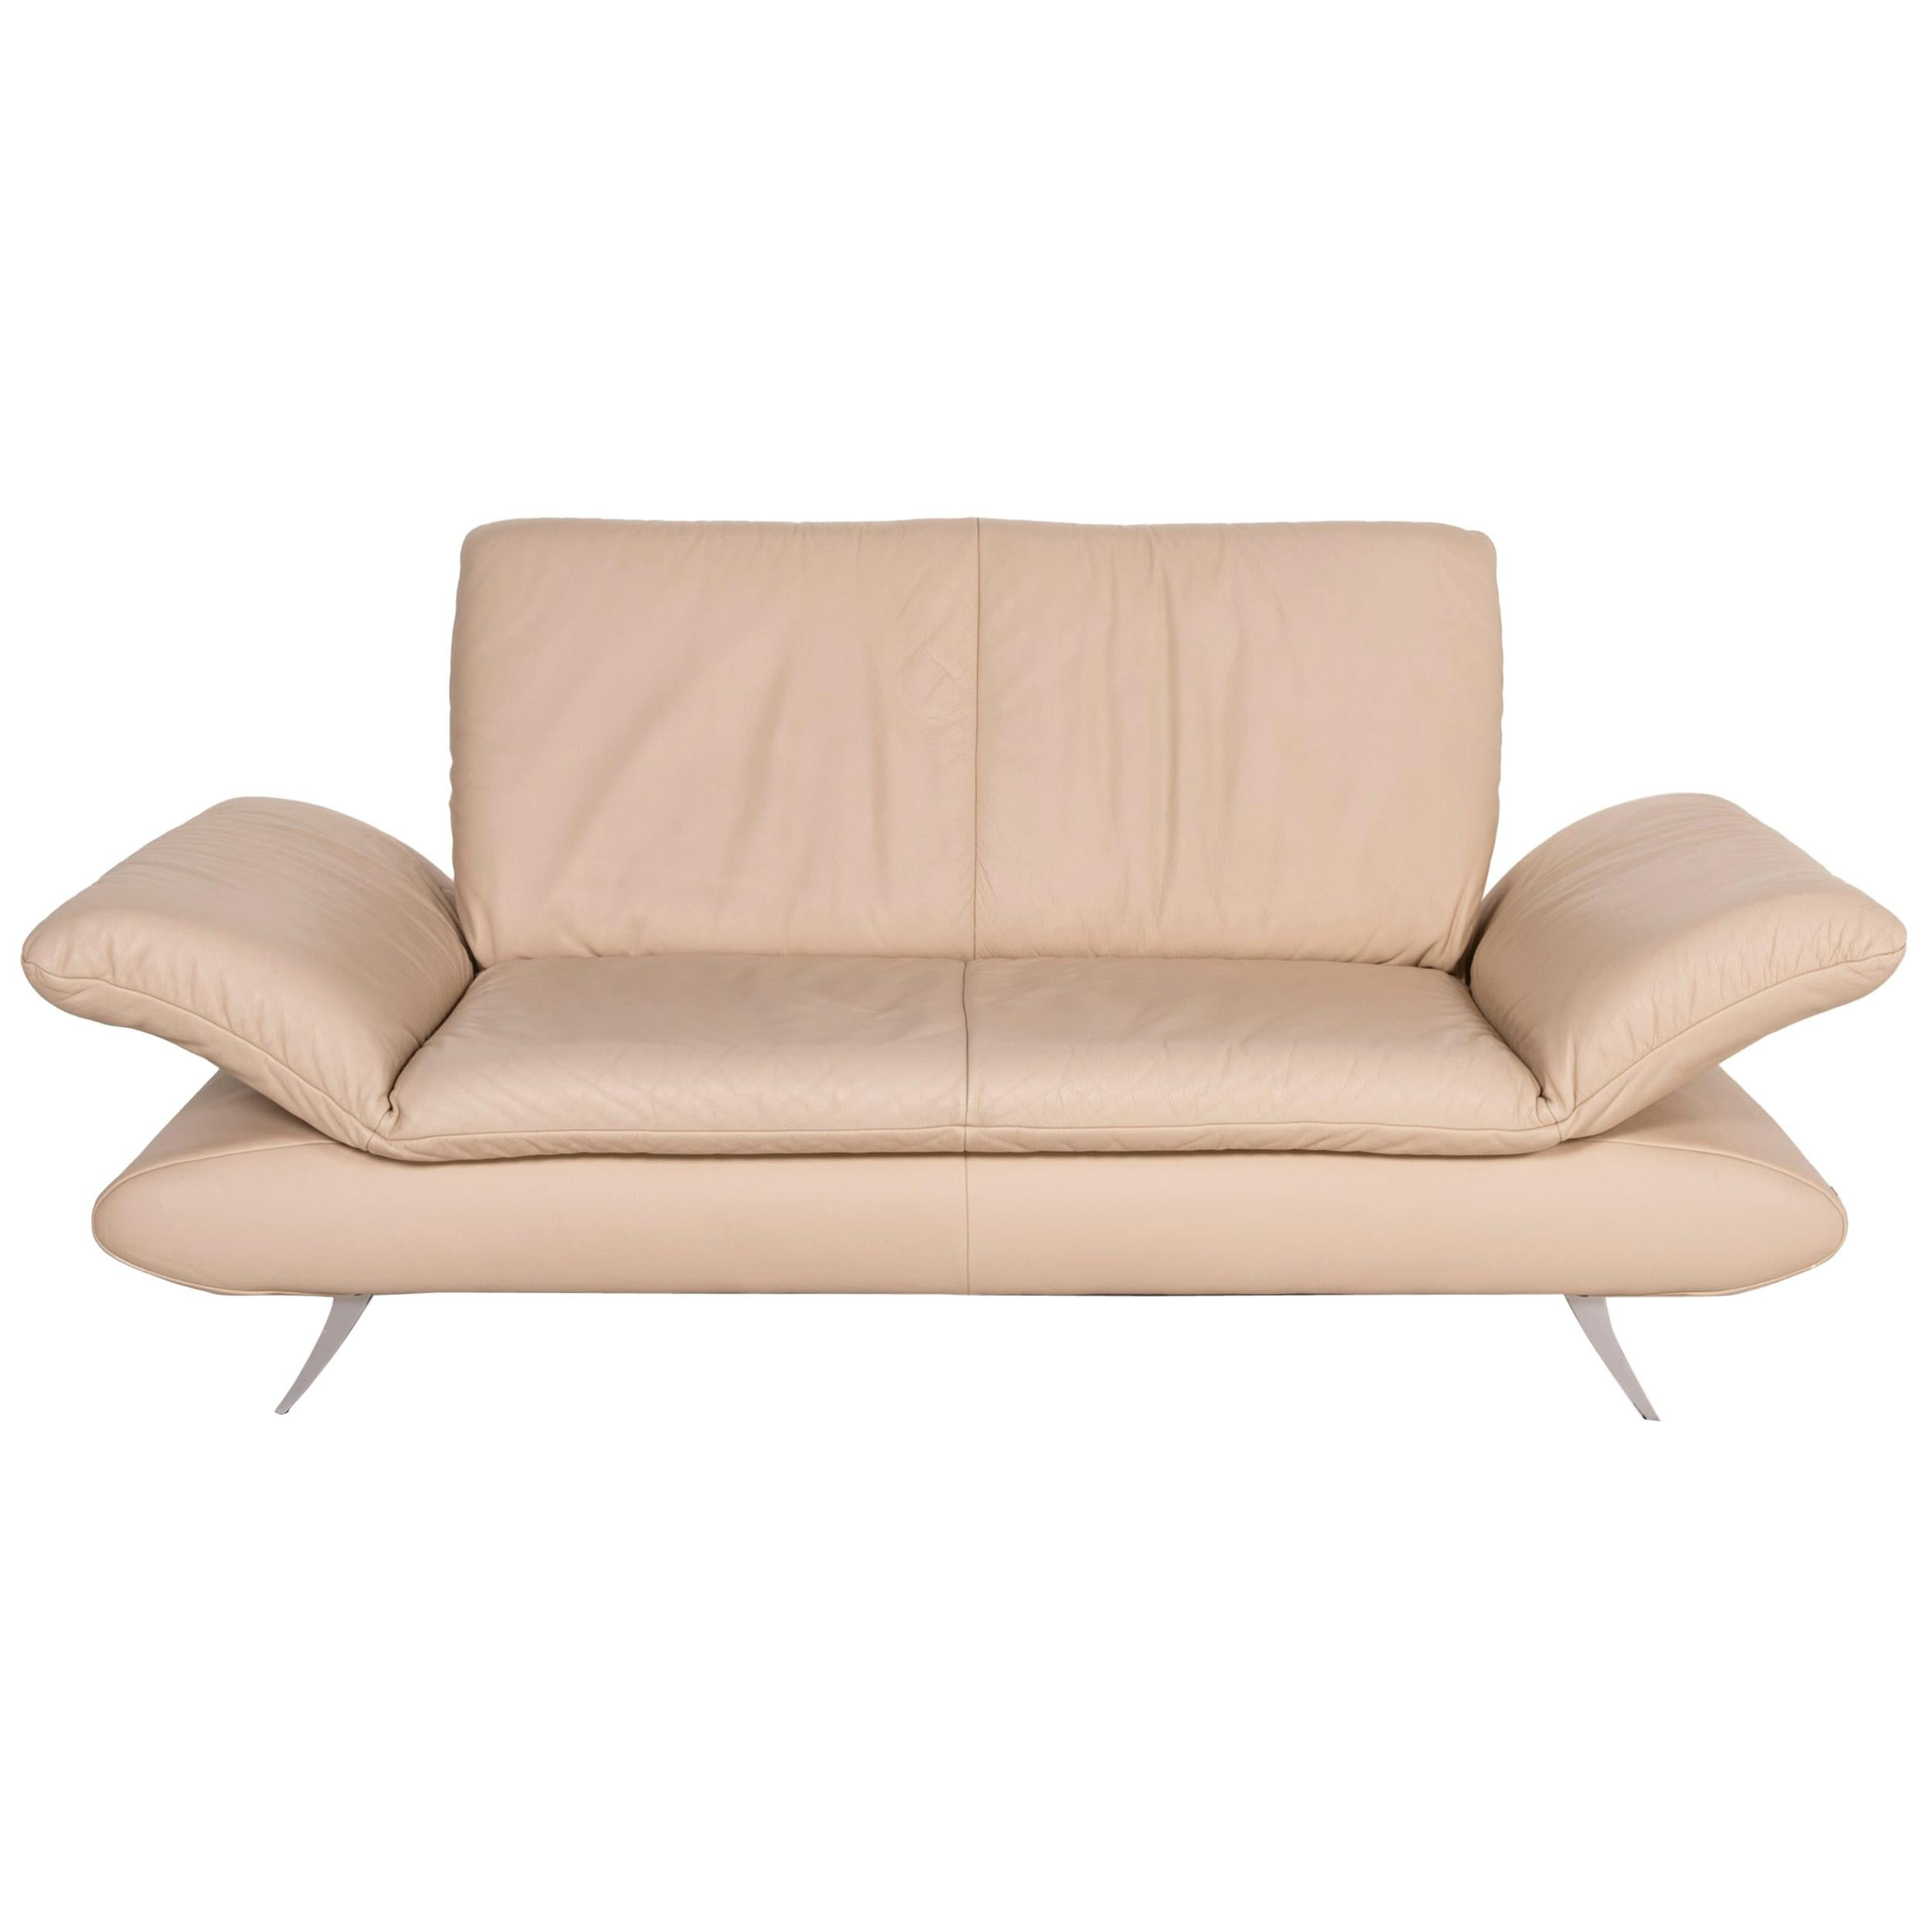 Koinor Rossini Leather Sofa Cream Two-Seater